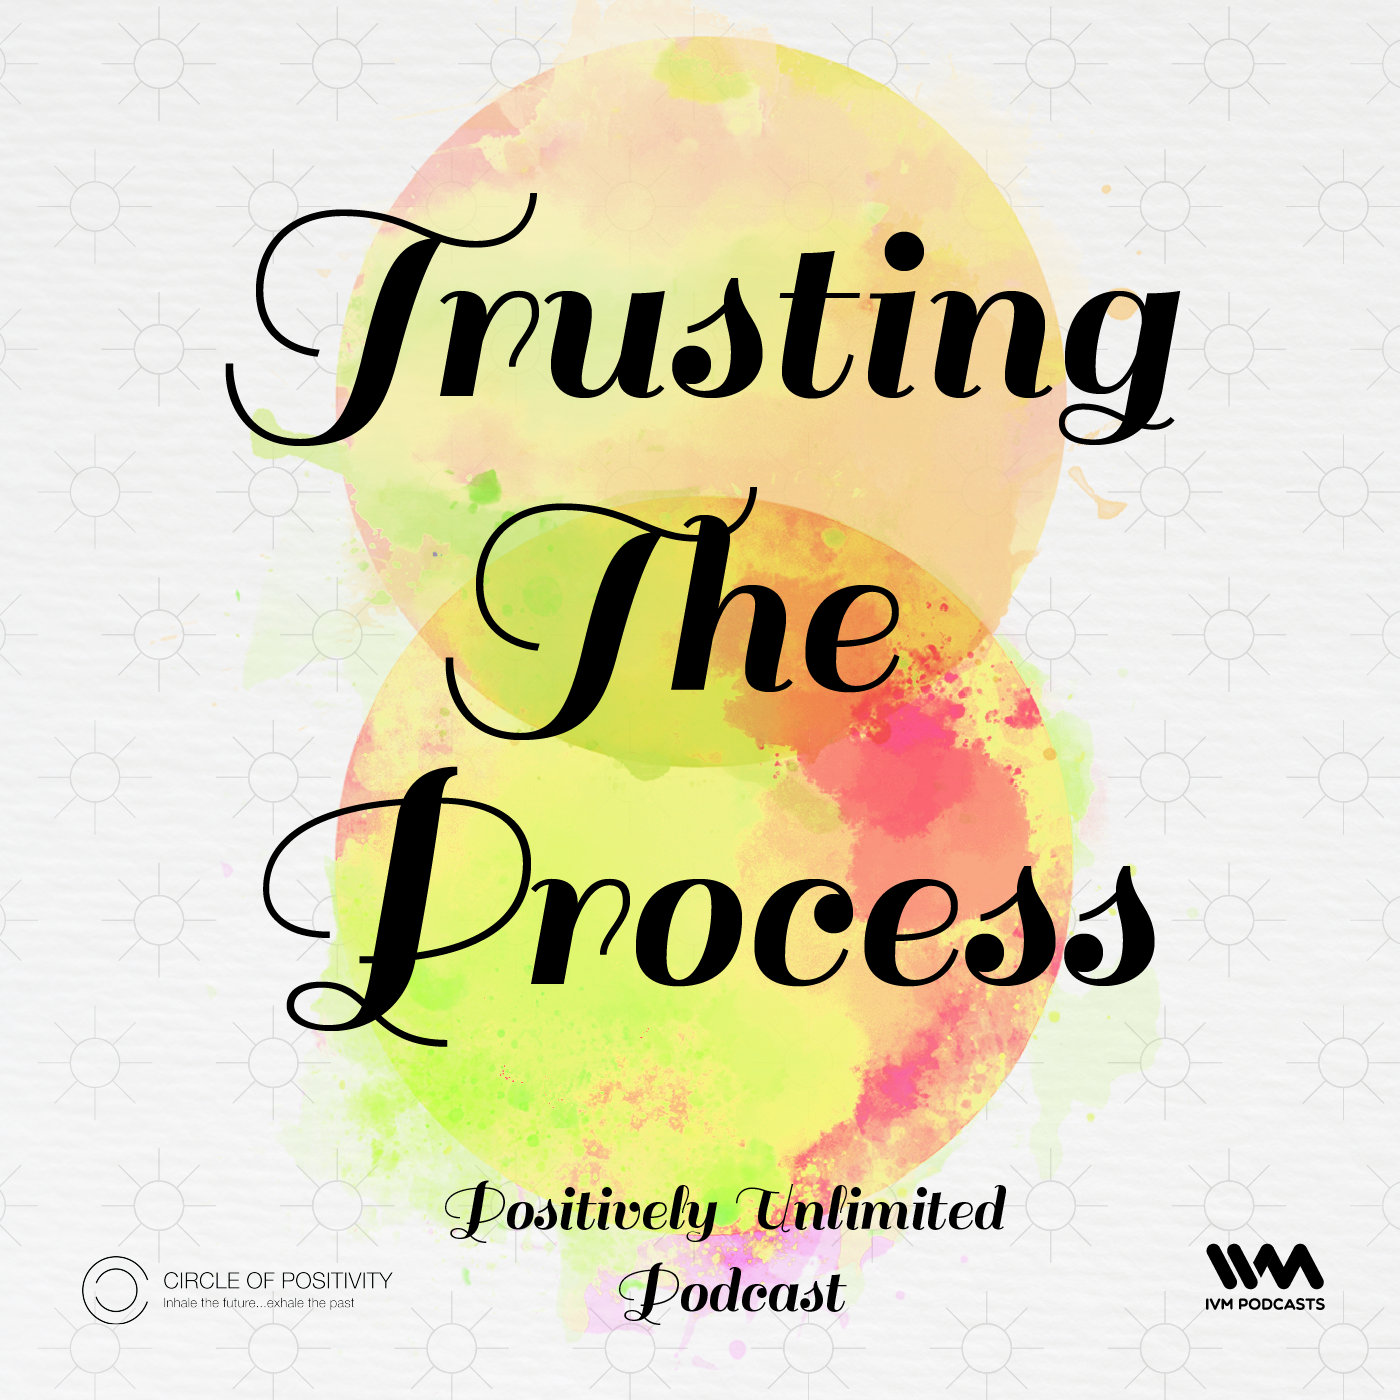 Ep. 95 - Trusting The Process